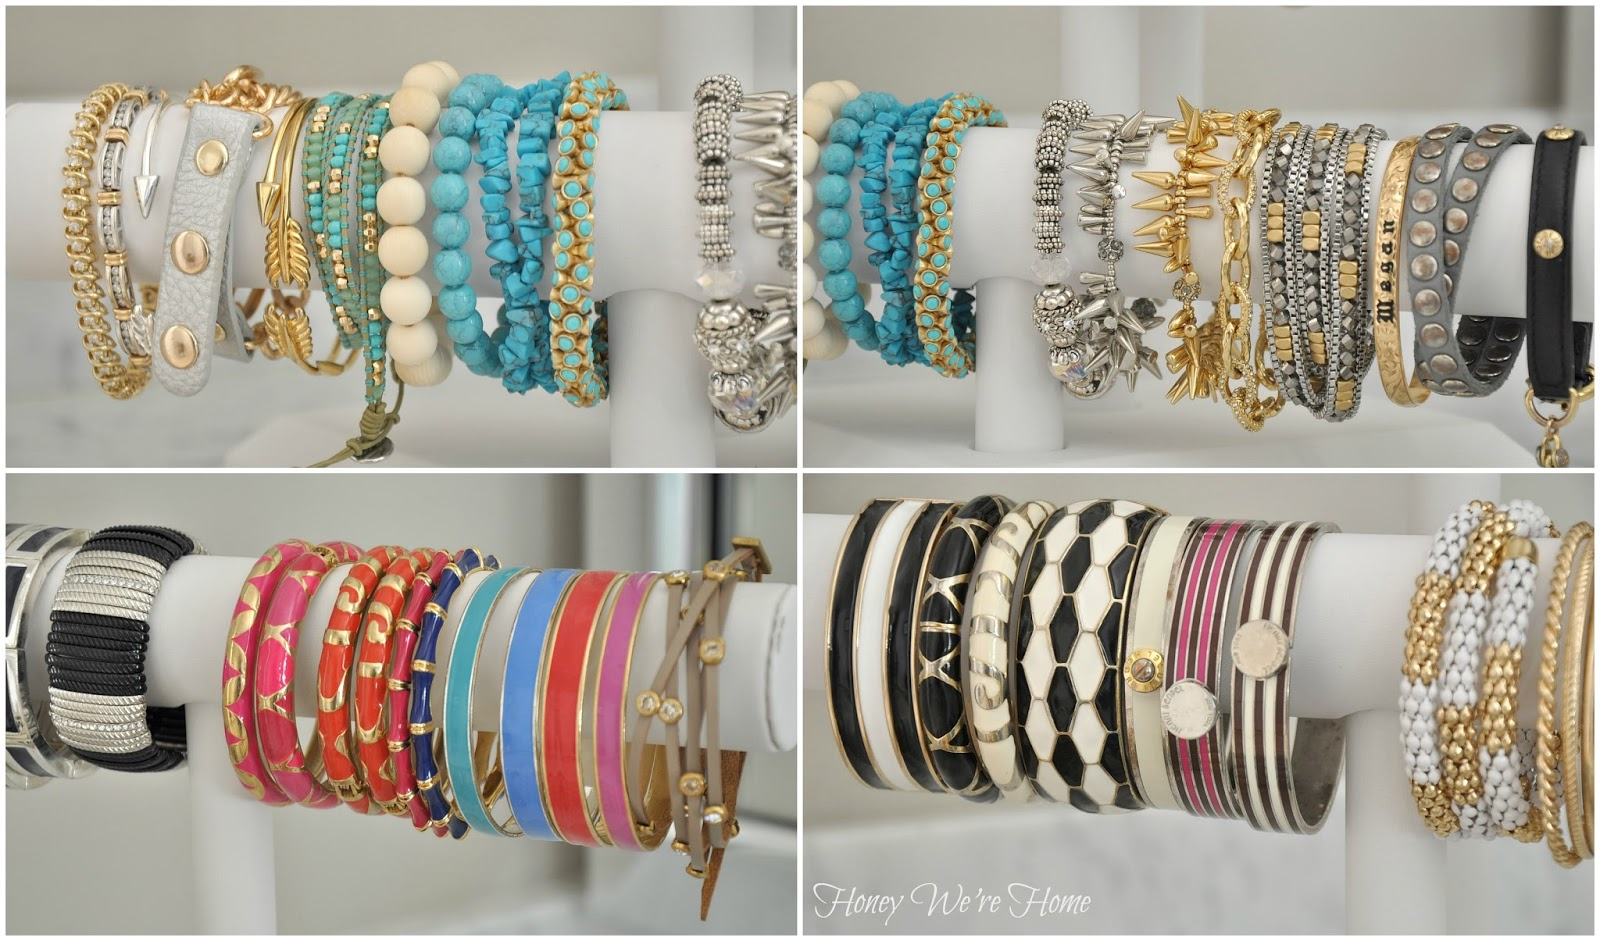 ����� ����� 2016 , ����� ��� �����, ����� 2016 , friendship bracelets patterns 2015_1412100239_792.